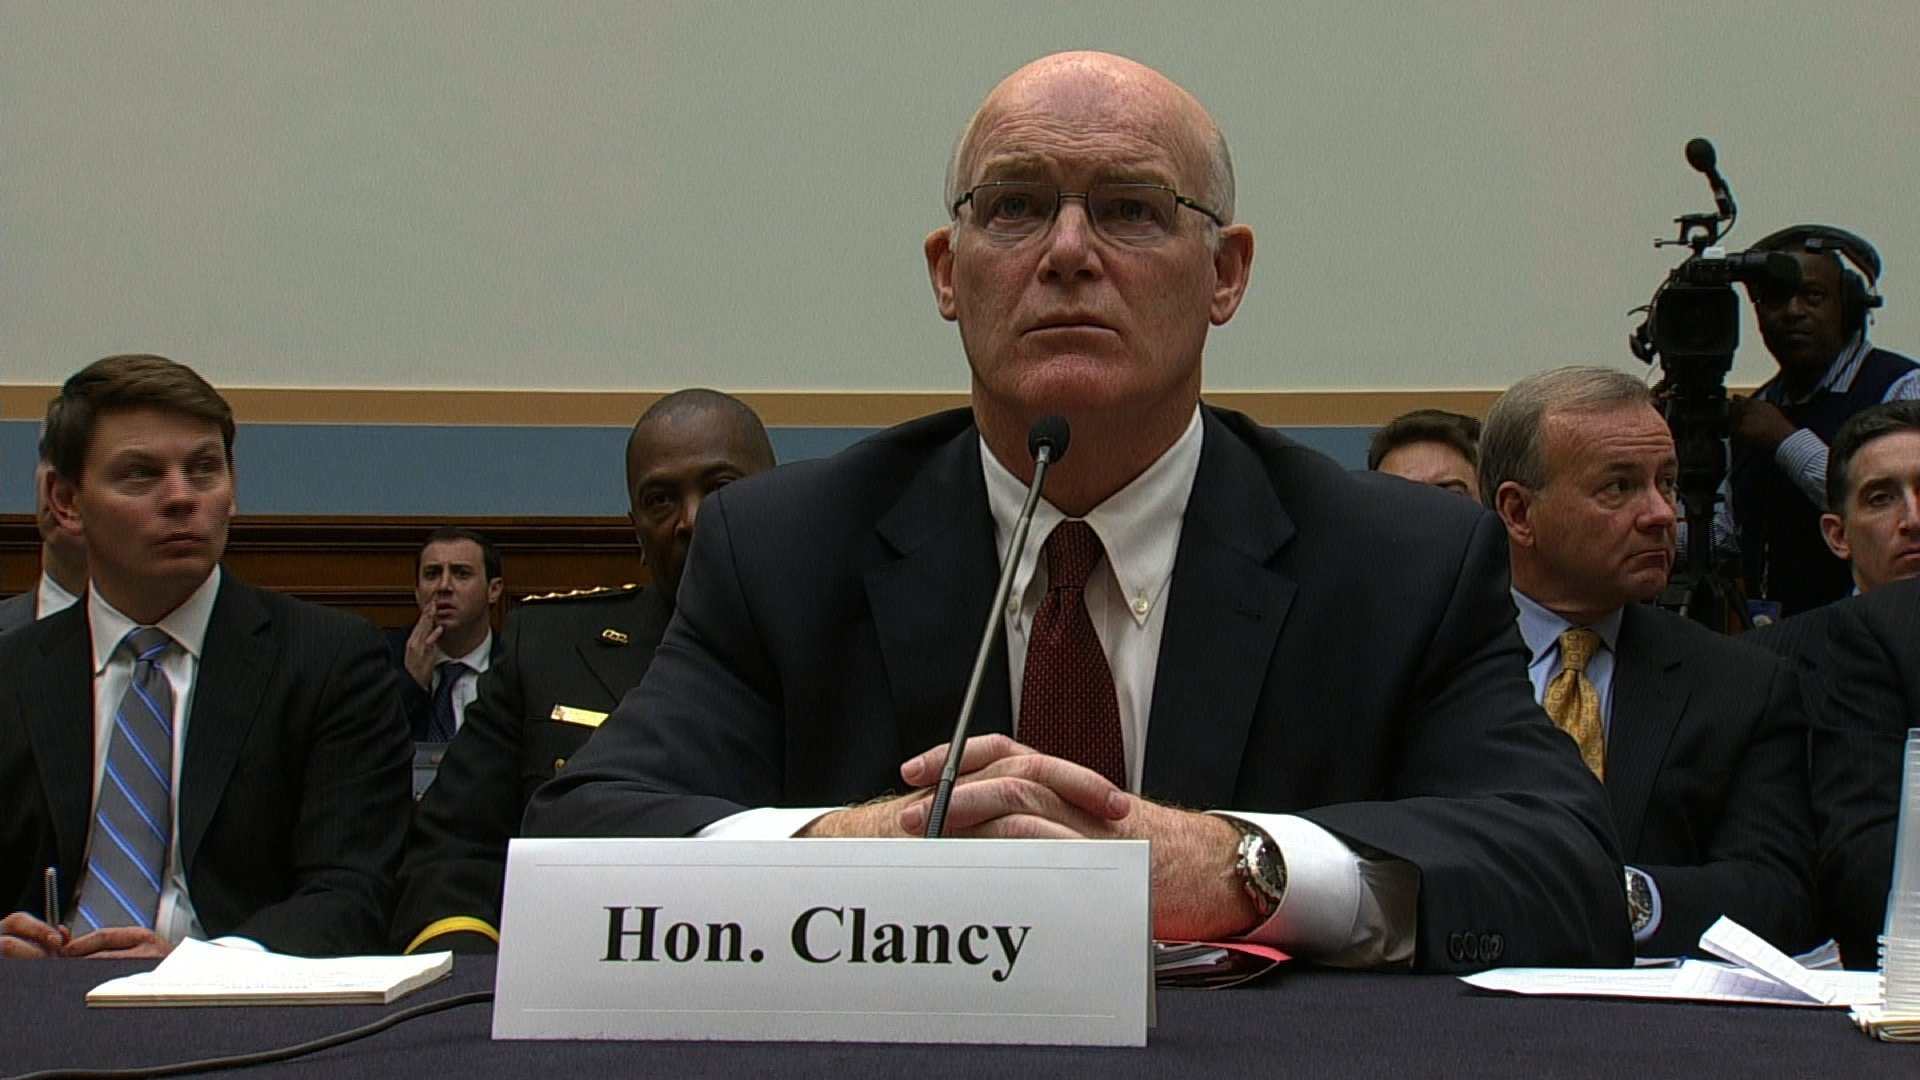 United States Secret Service director Joseph Clancy announced his retirement to the staff Tuesday, Feb. 14, 2017 a spokesperson tells CNN. (File Photo)